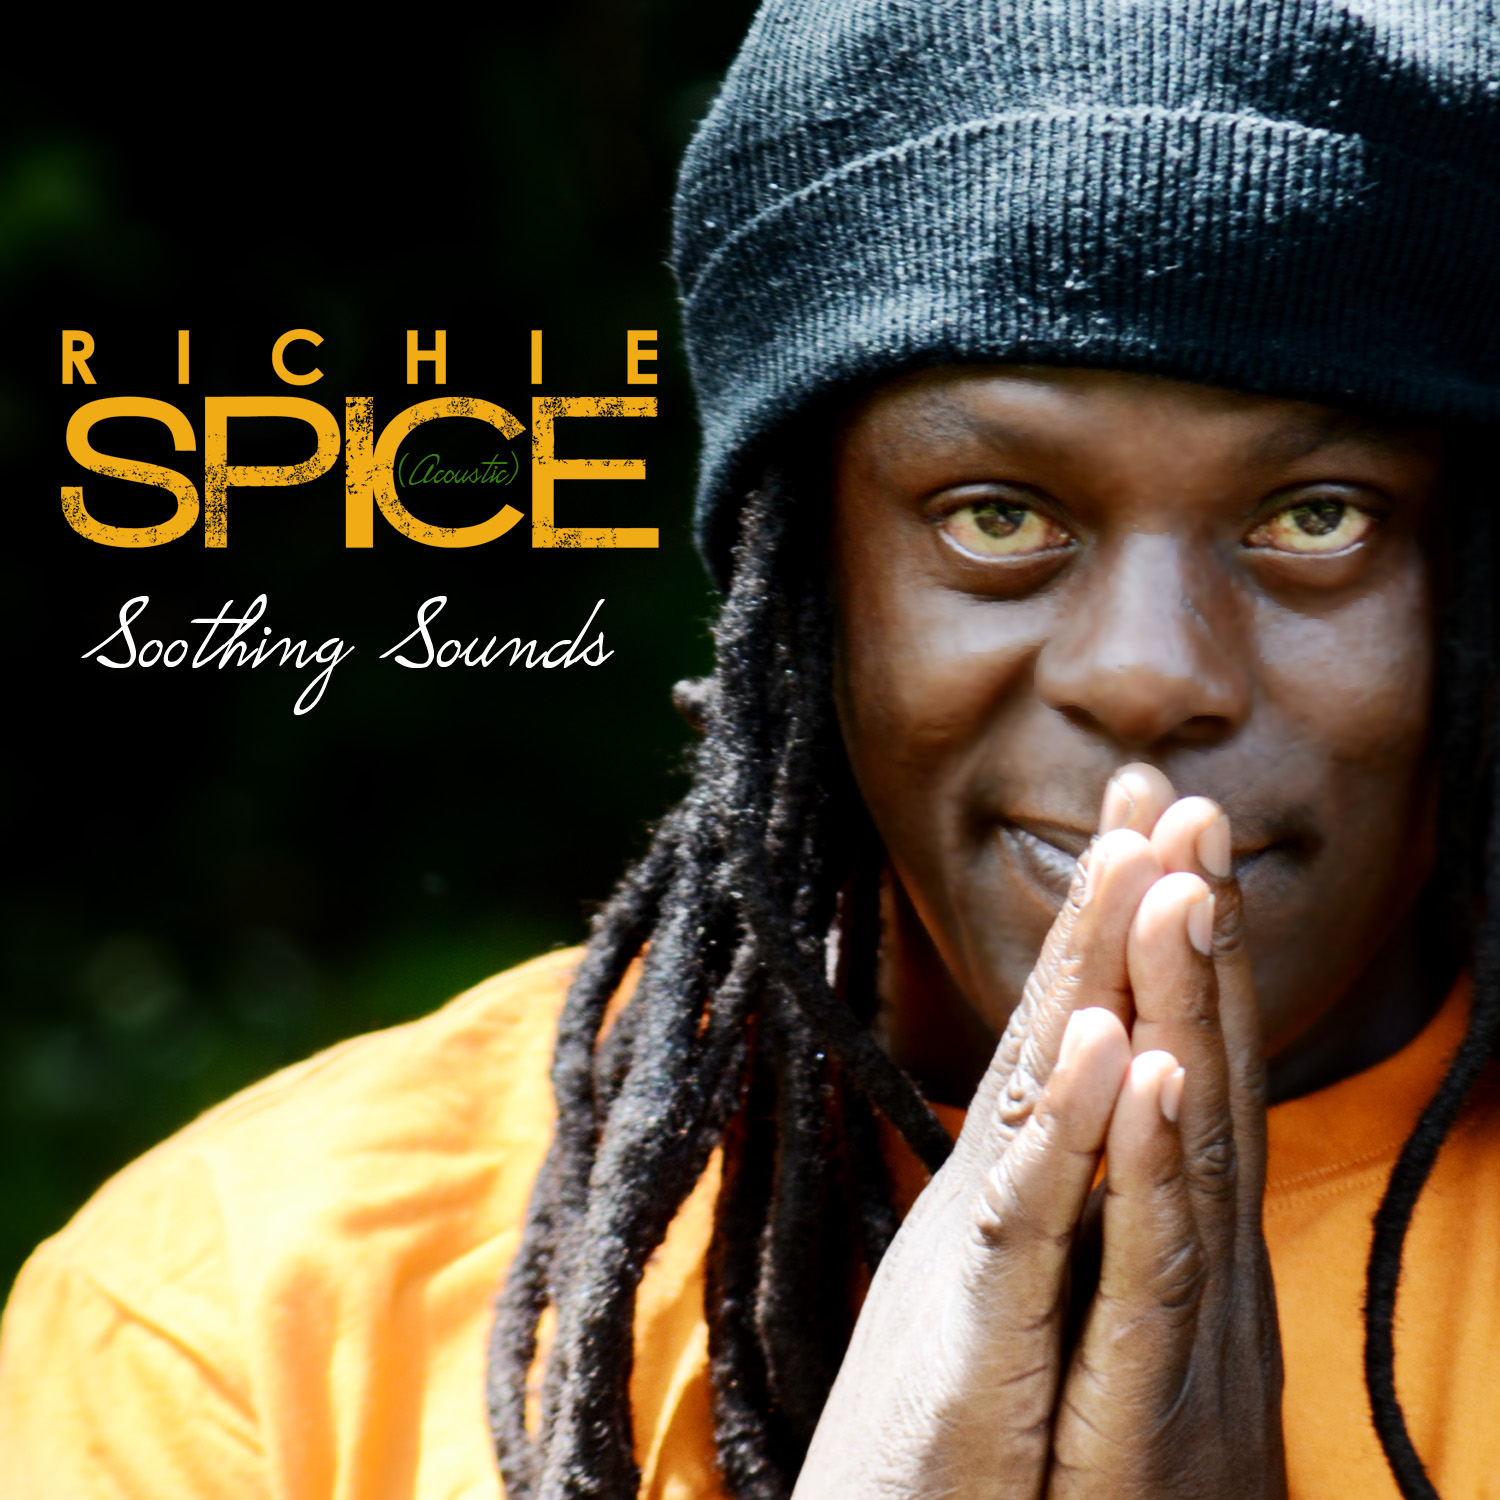 http://2.bp.blogspot.com/-8fV36IYqjII/ULZ84yHmYPI/AAAAAAAADng/tWOaaIPj0PI/s1600/RICHIE_SPICE+ACOUSTIC+SOUNDS+ALBUM+COVER.jpg